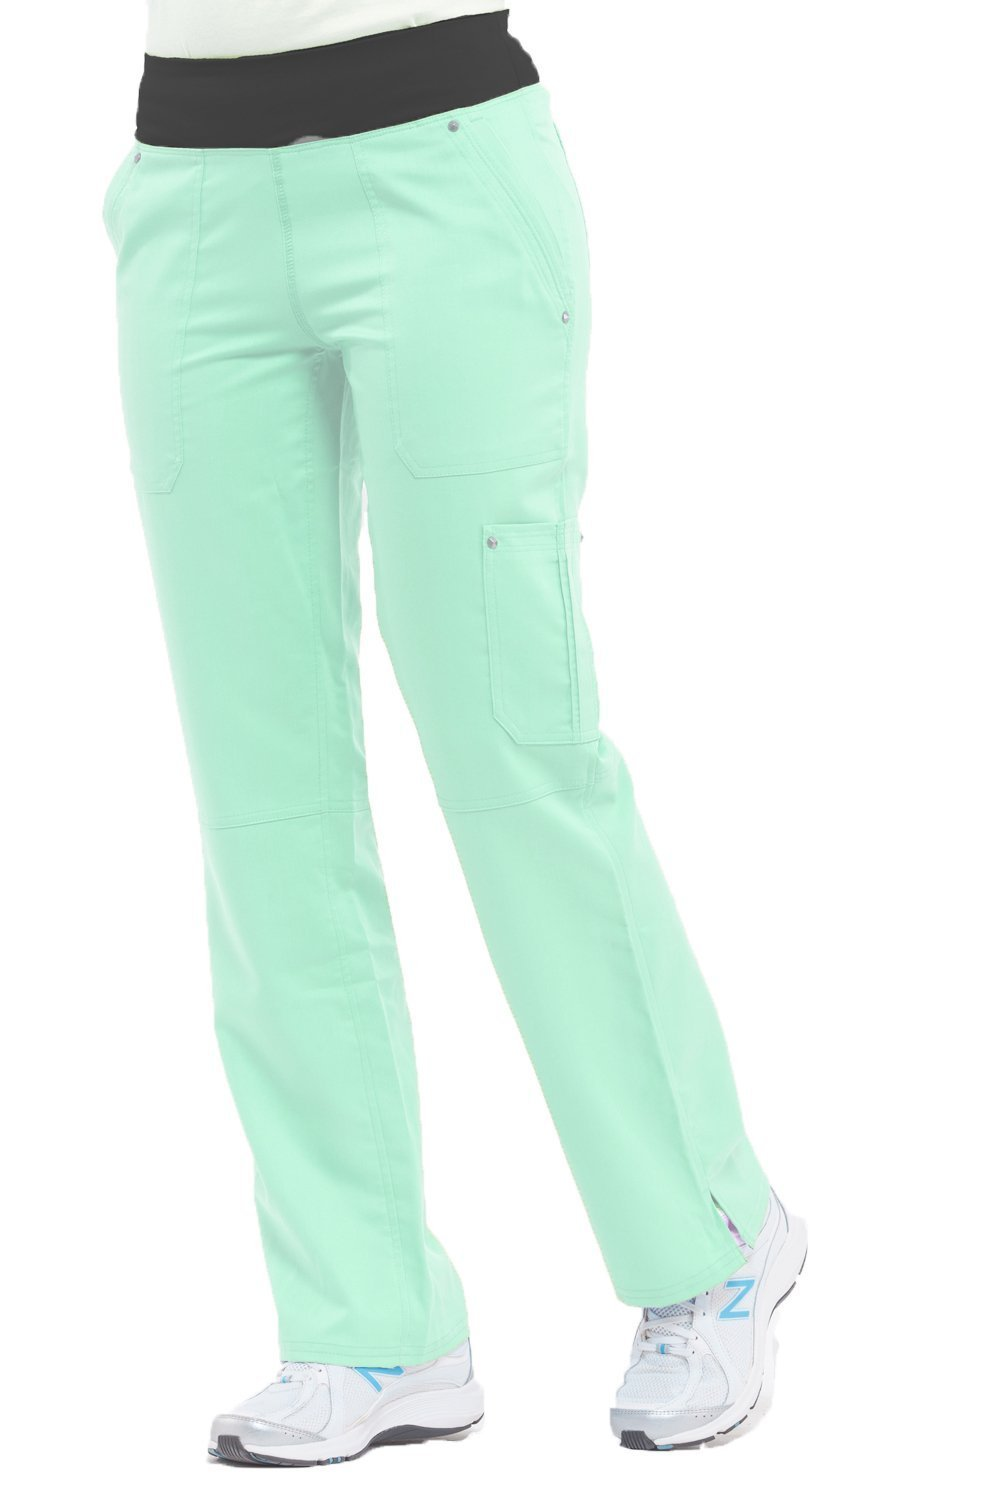 Purple Label Yoga Women's Tori 9133 5 Pocket Knit Waist Pant by Healing Hands- Mint- 2X-Large